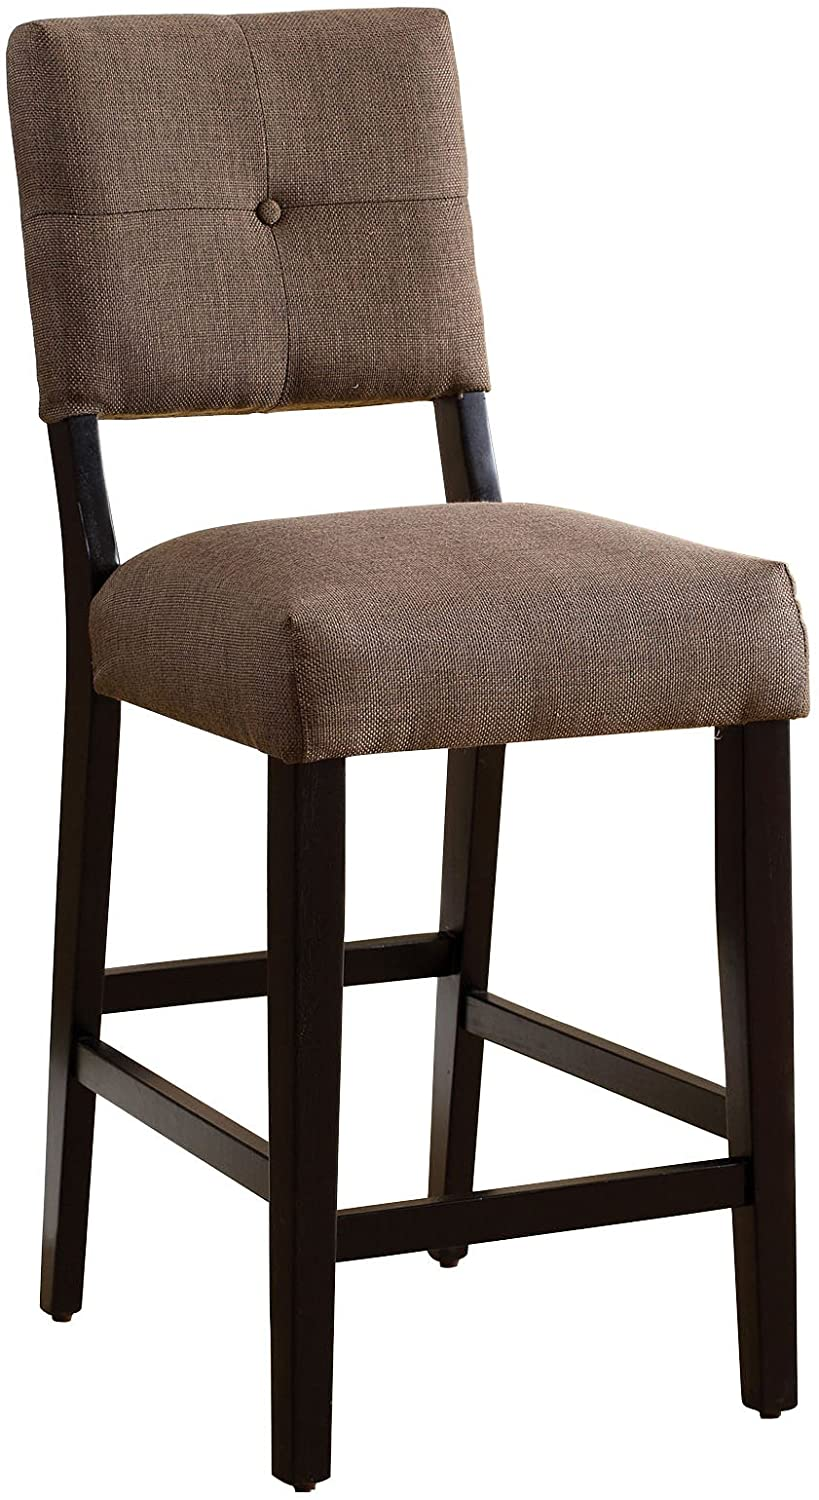 Ballard Espresso Counter Dining Chair (set of 2)